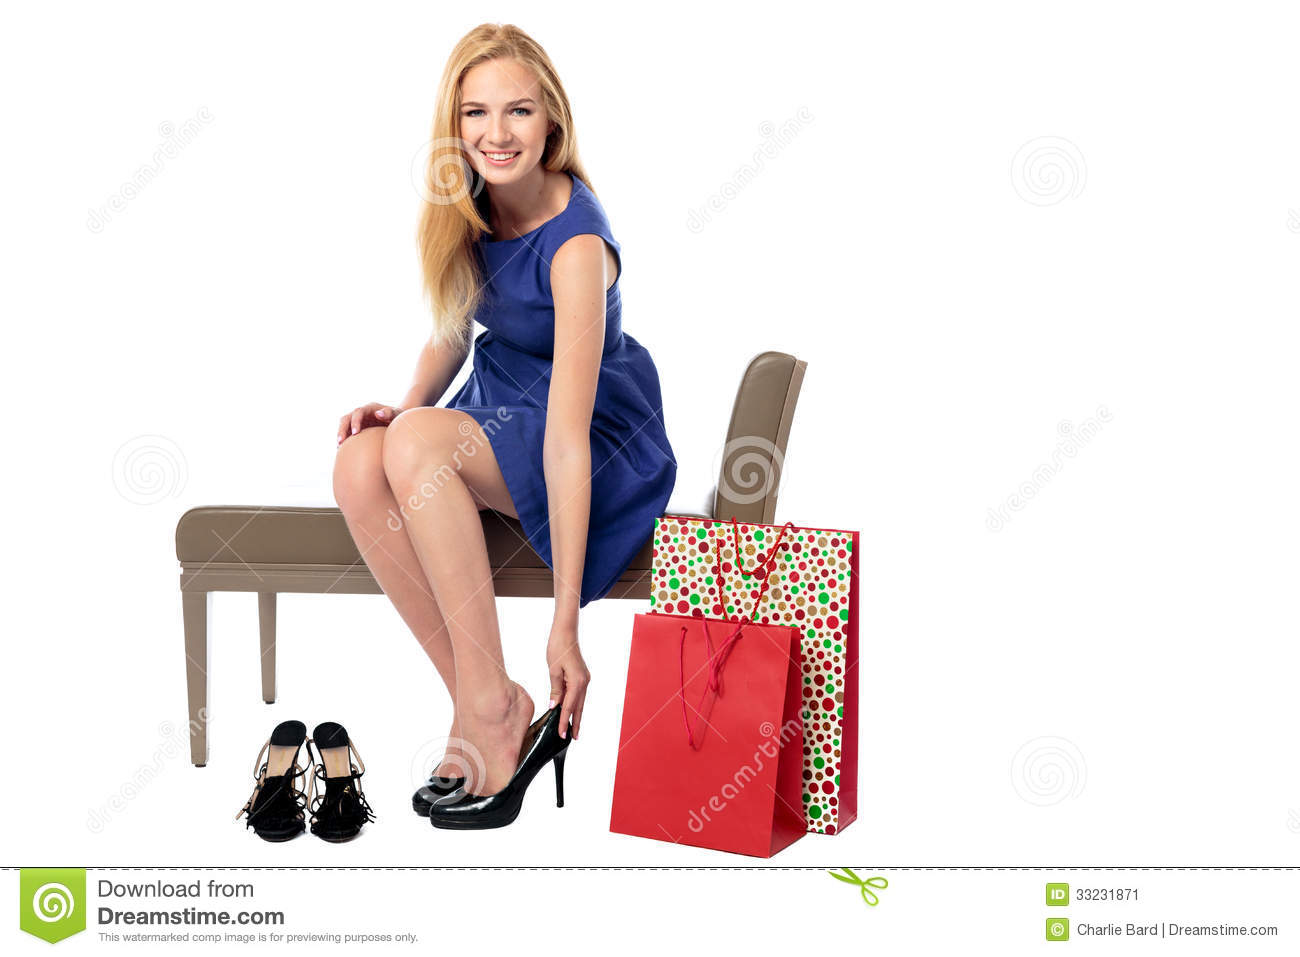 caf6520cc868e Smiling stylish young woman shopping for shoes sitting on a bench trying on  a pair of elegant stilettoes with carrier bags propped alongside, on white